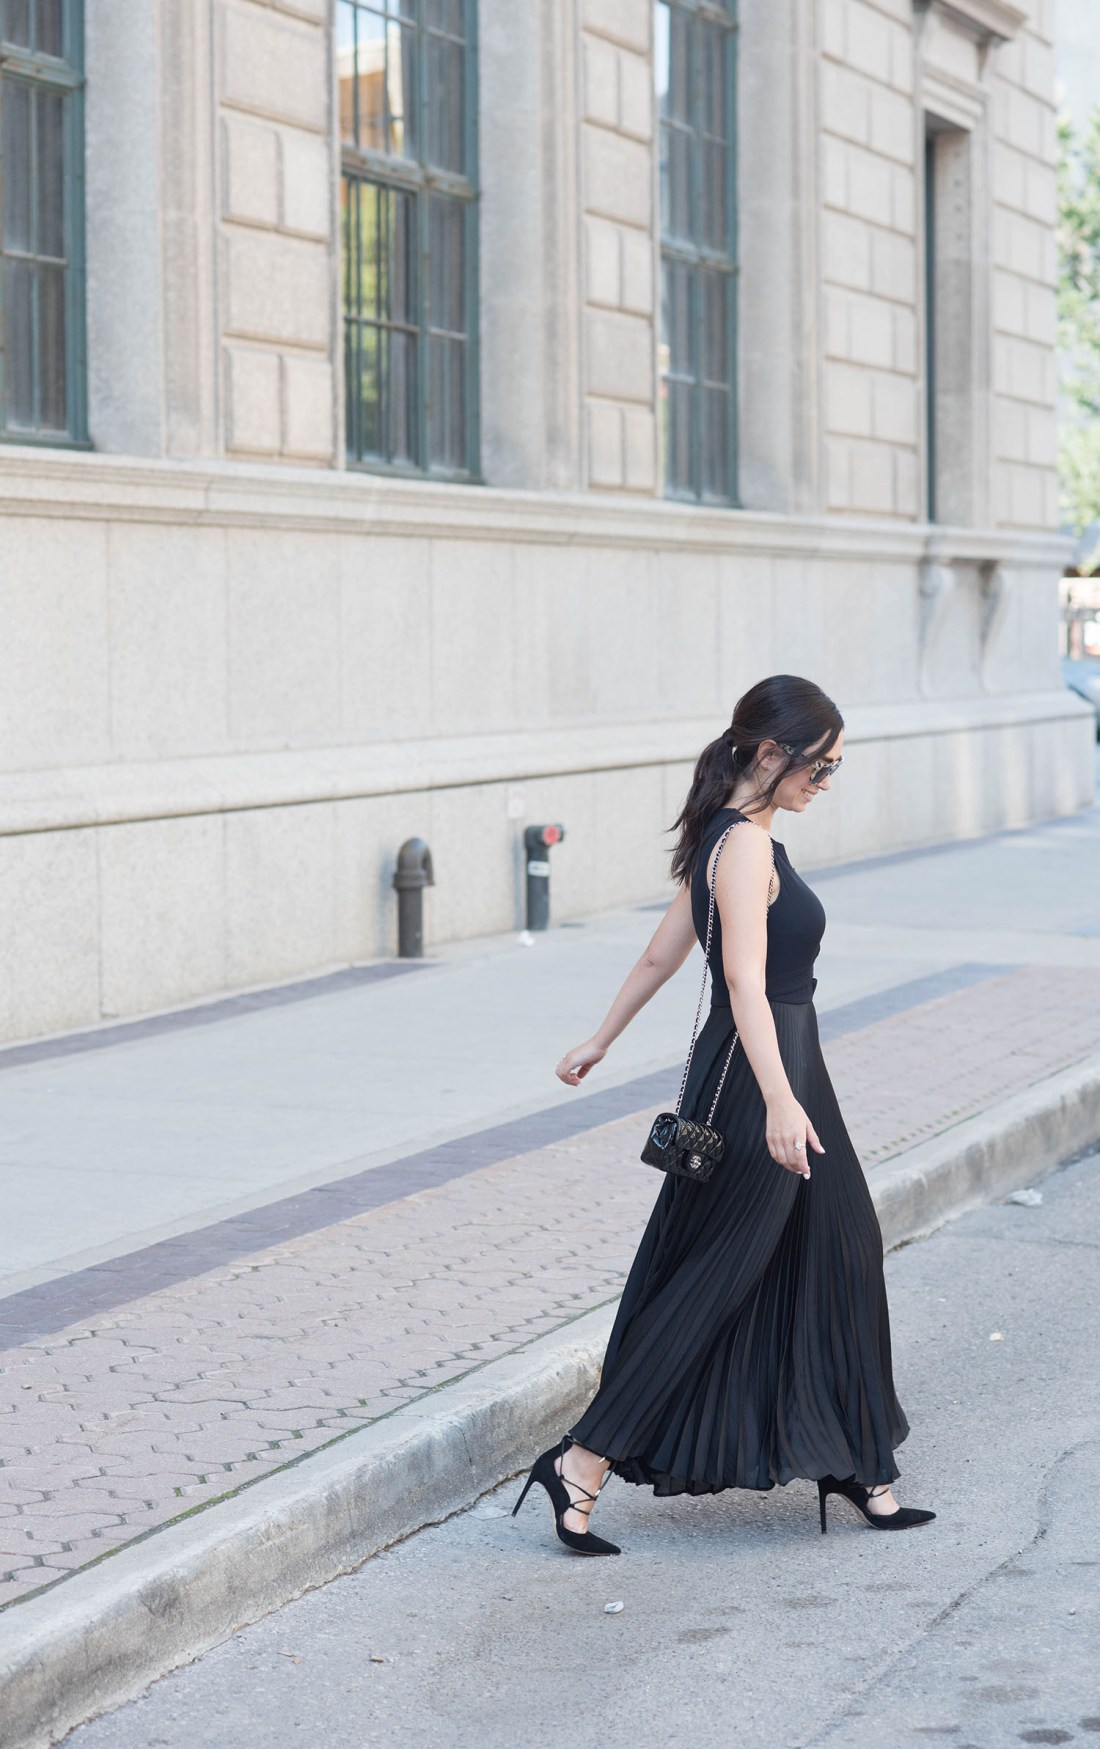 Fashion blogger Cee Fardoe of Coco & Vera wears an ALC pleated maxi dress and a ponytail styled by Fran Rizzutto